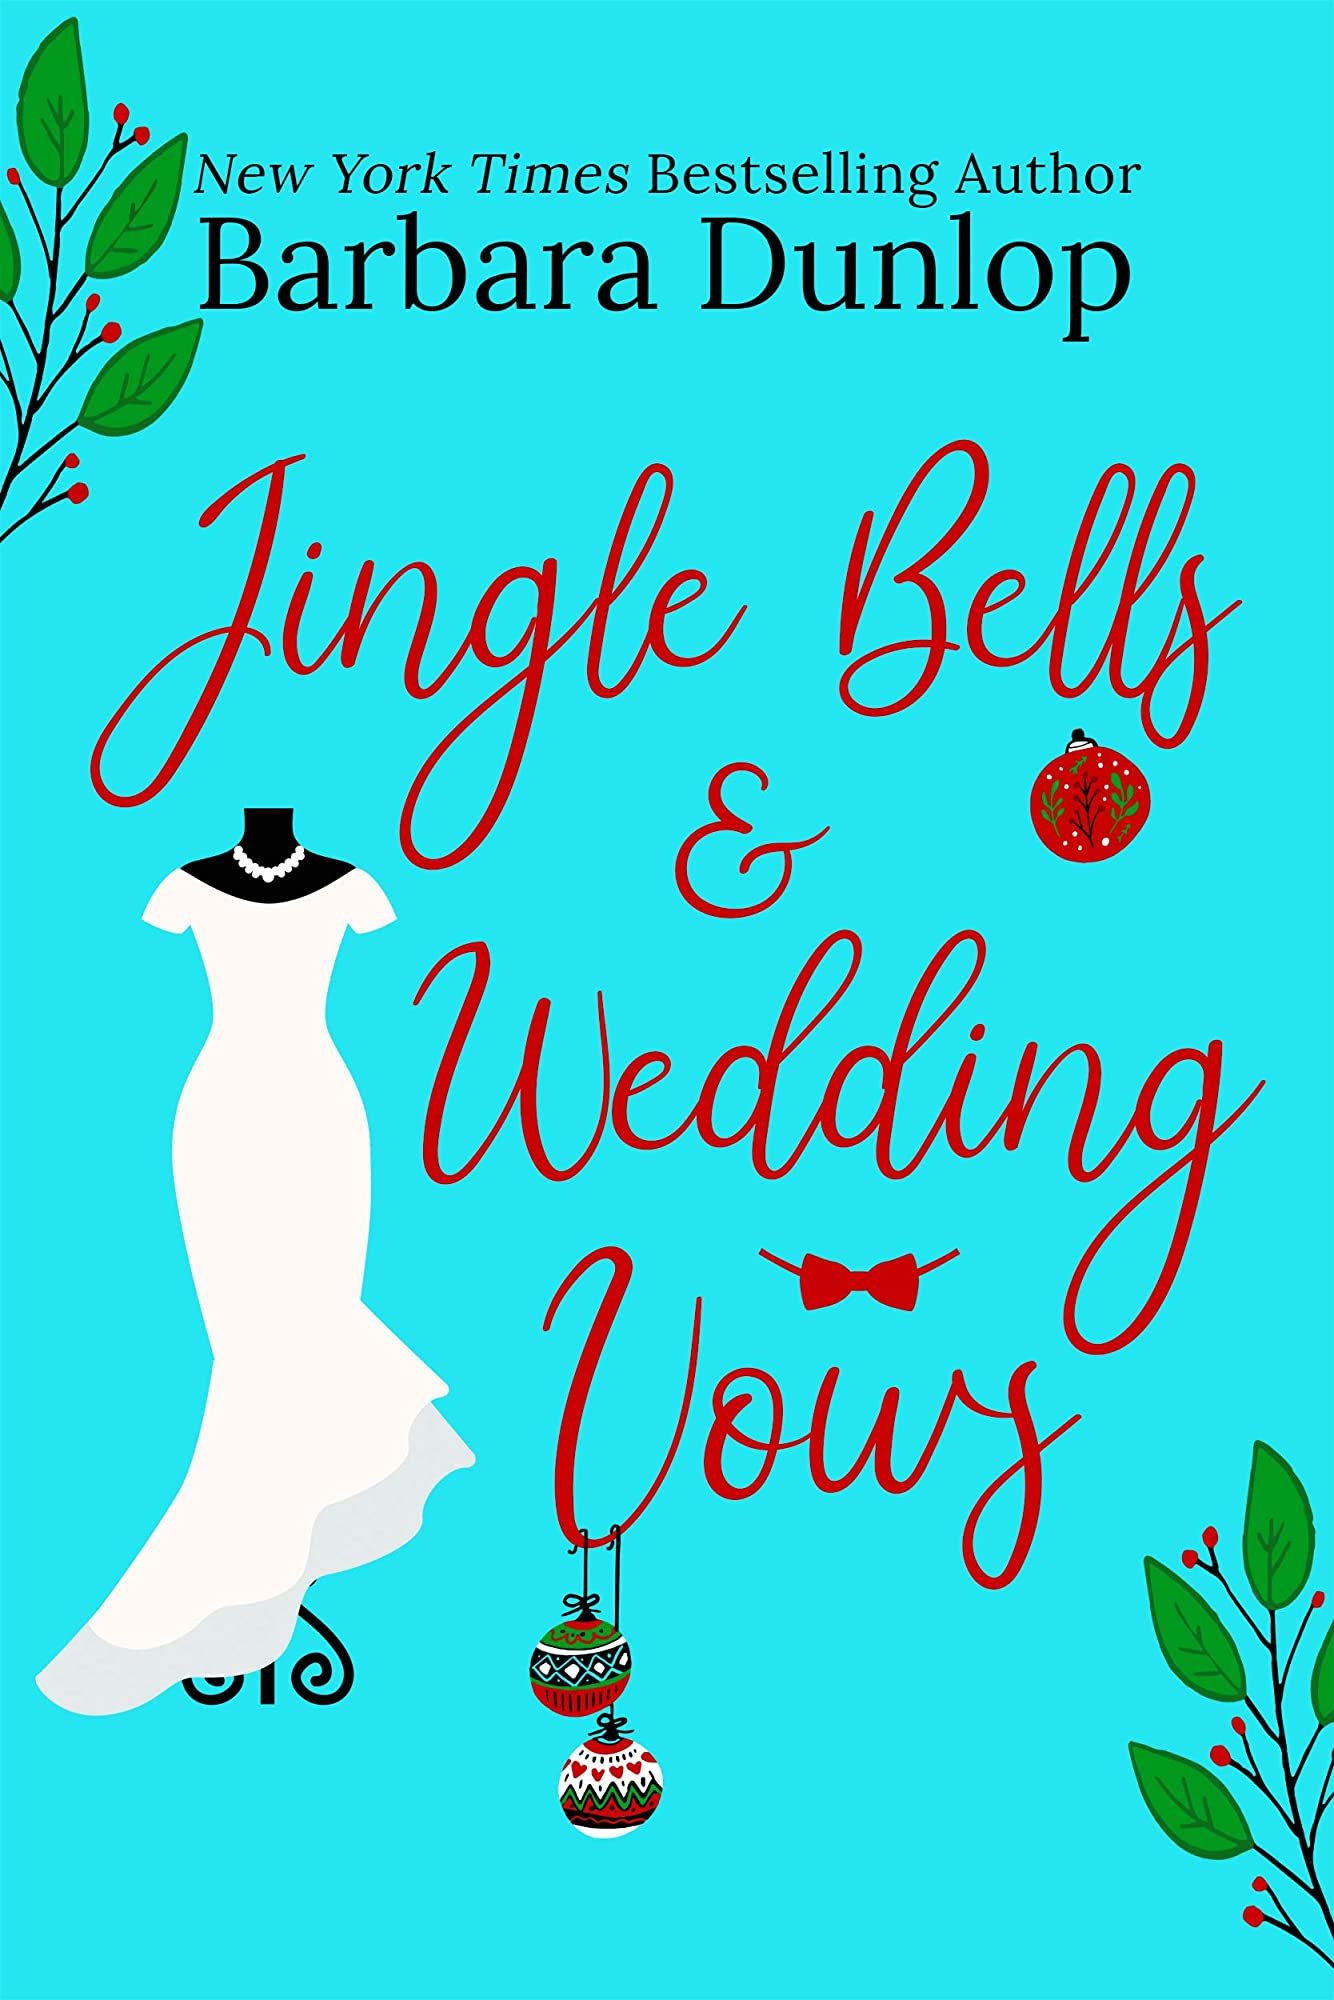 Jingle Bells and Wedding Vows by Barbara Dunlop